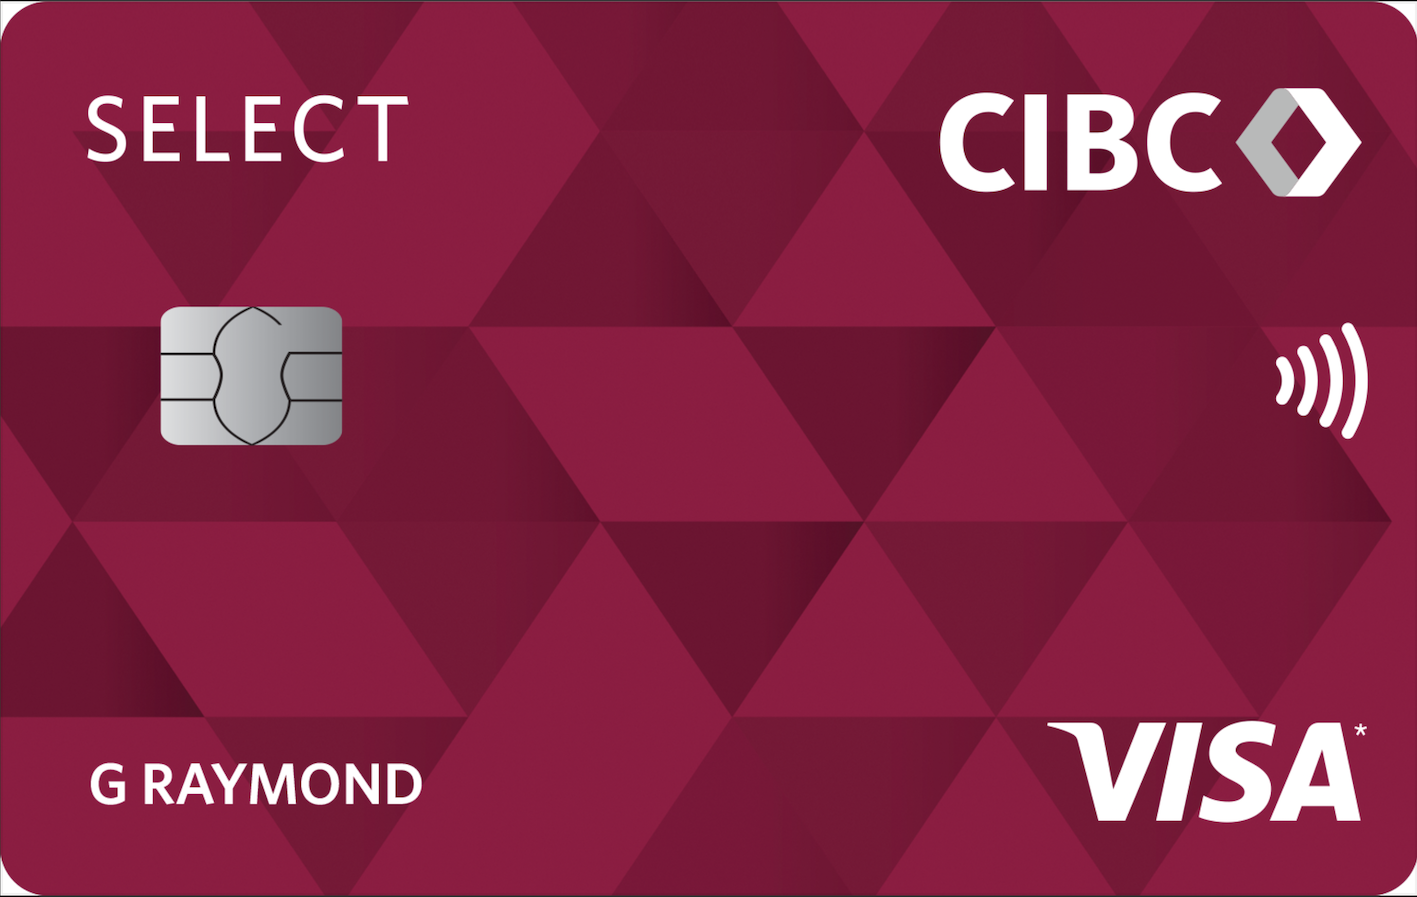 CIBC Select Visa* Card